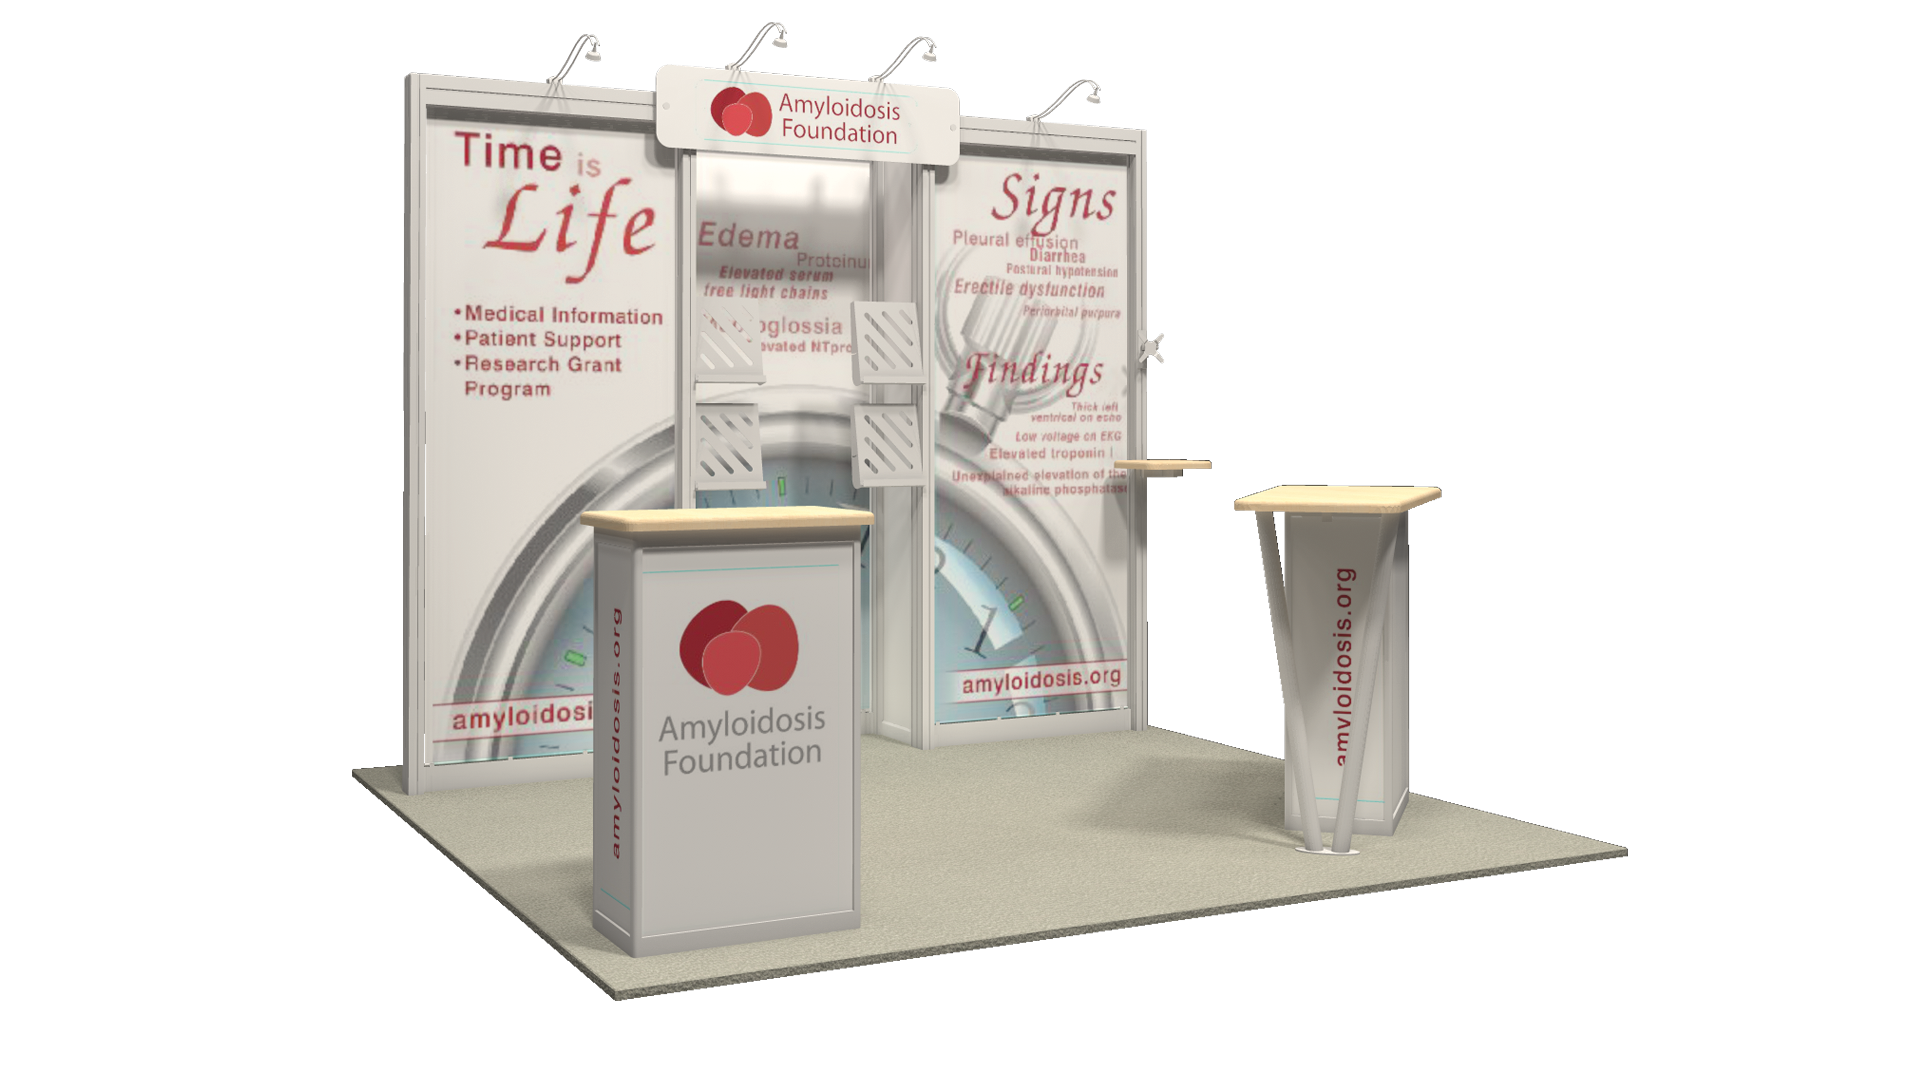 Amyloidosis Foundation - 10x10 - trade show exhibit